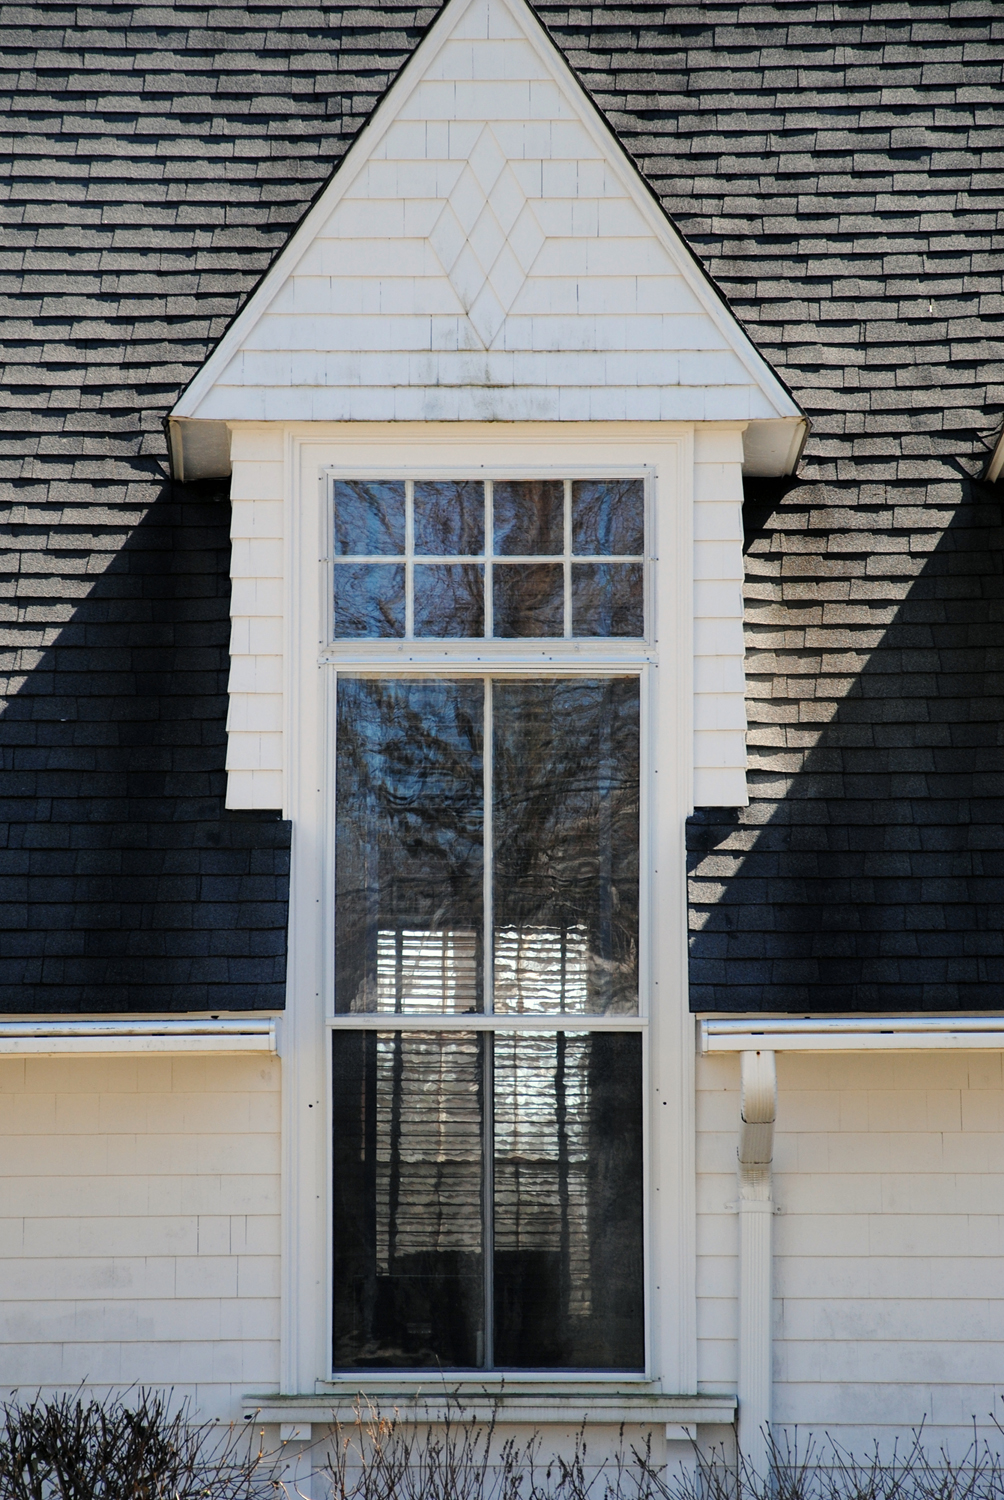 sears dormer detail_reduced.jpg